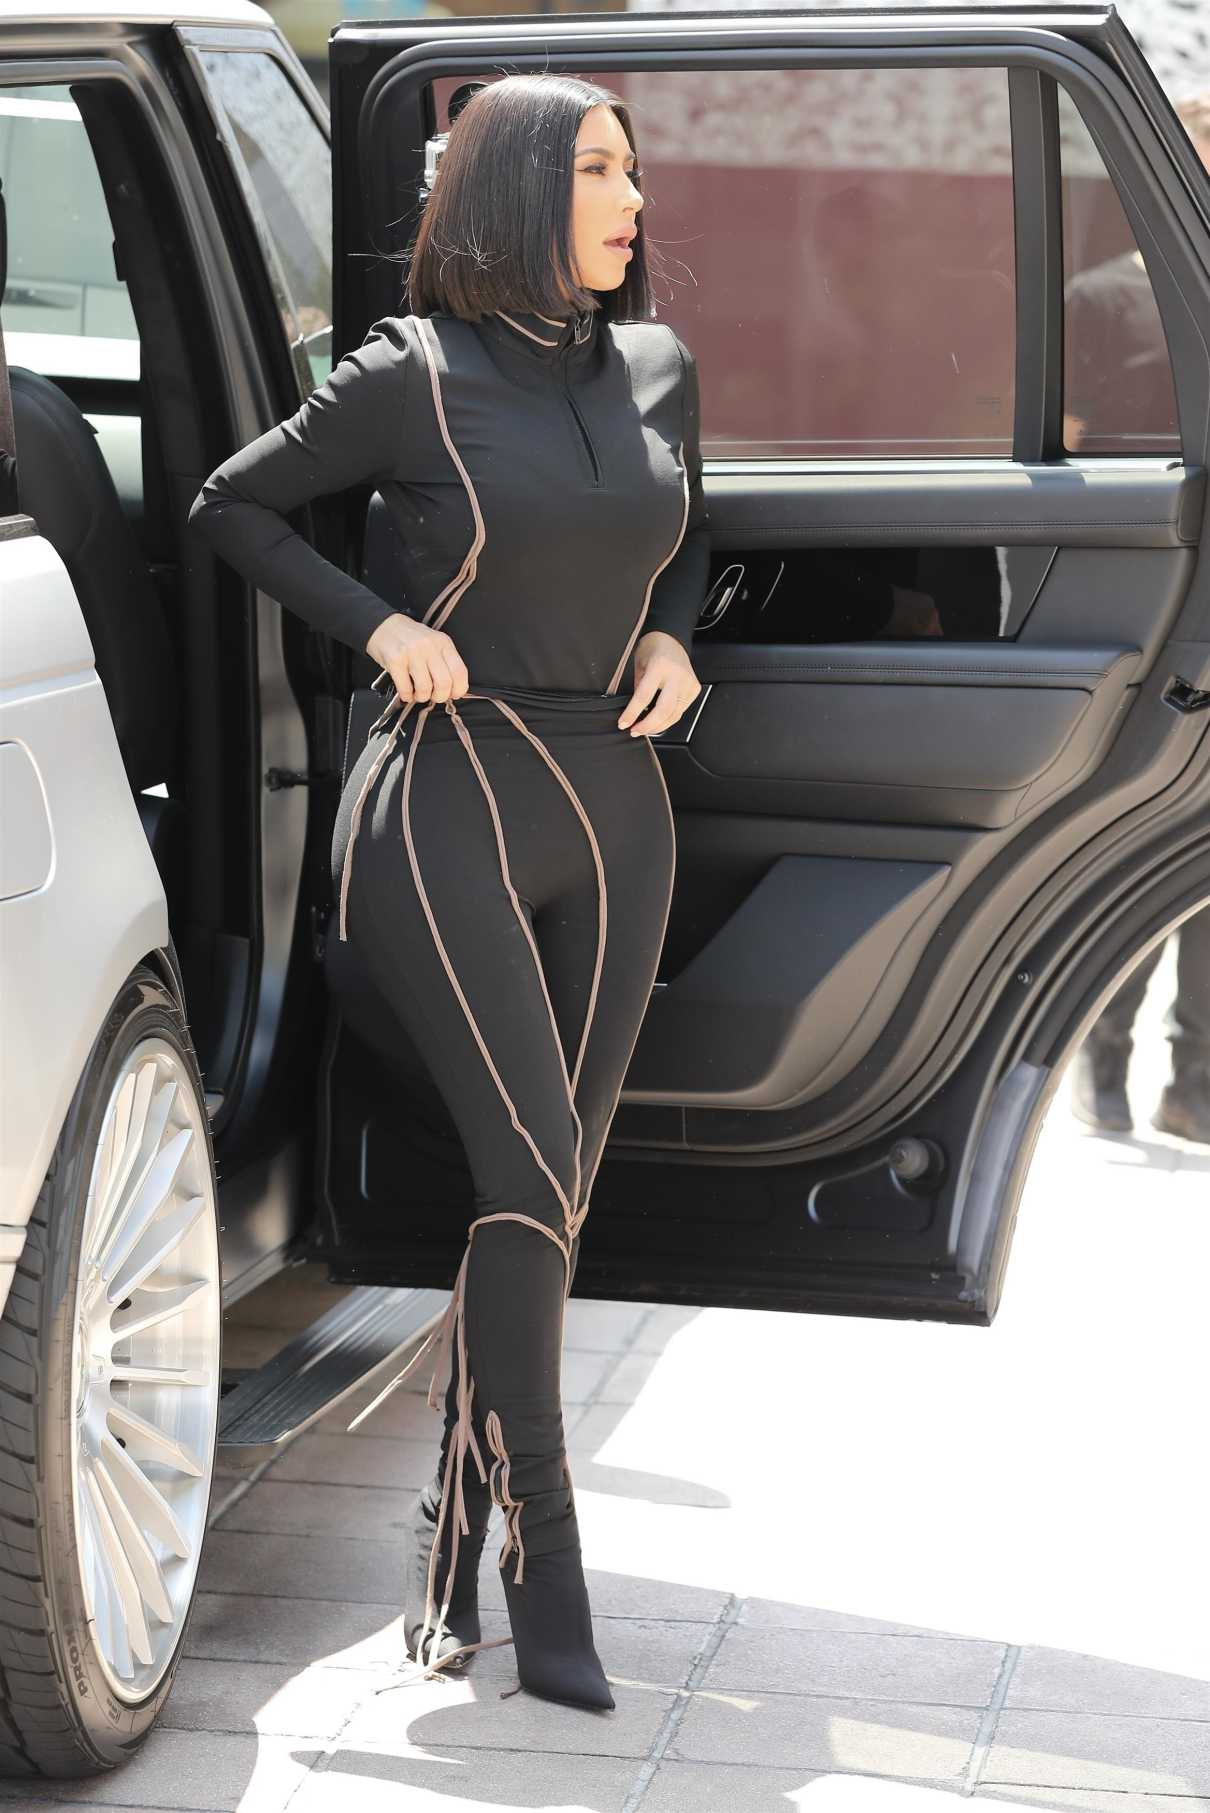 Kim Kardashian in a Black Form Fitting Suit